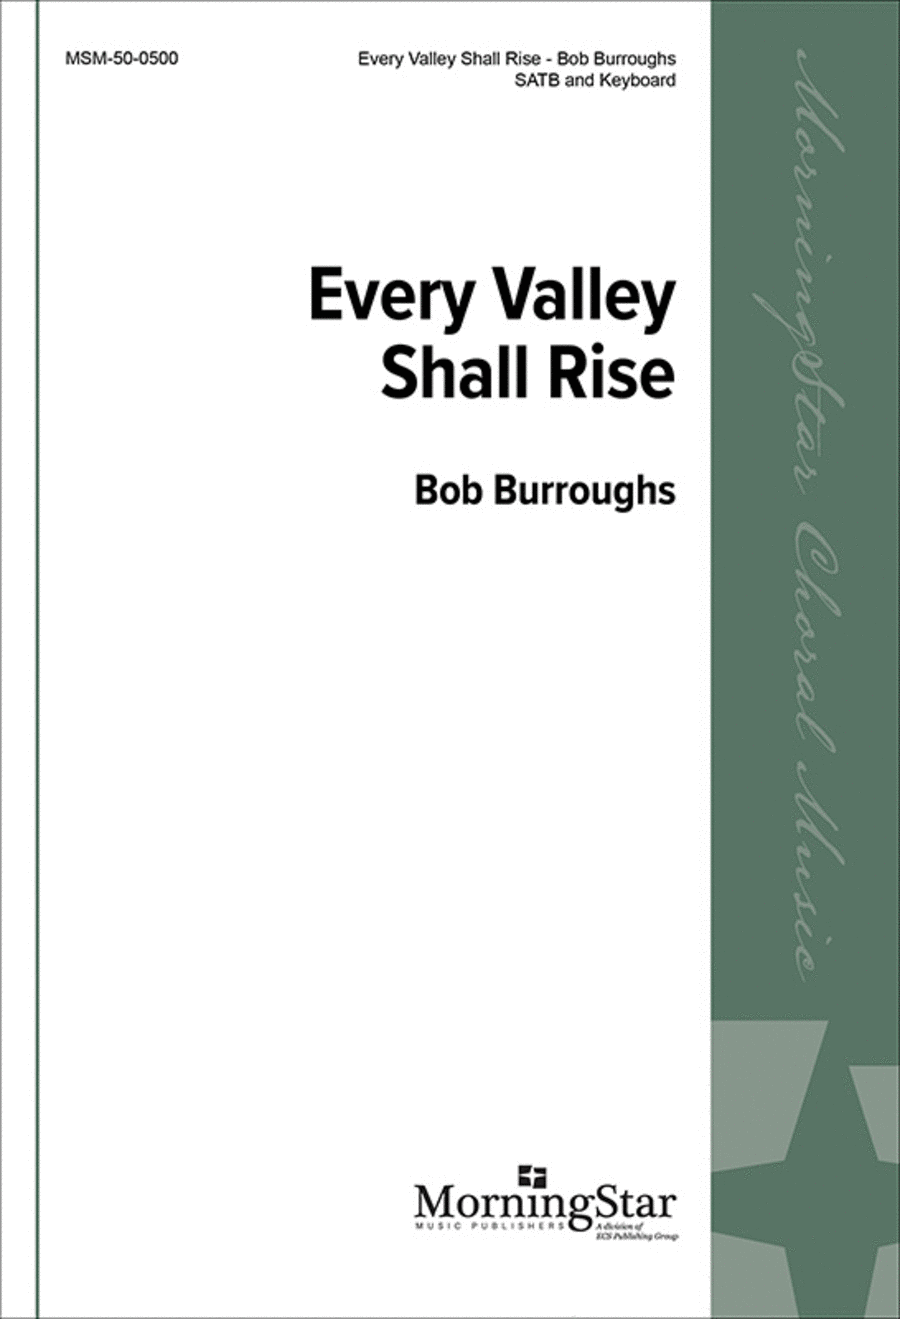 Every Valley Shall Rise